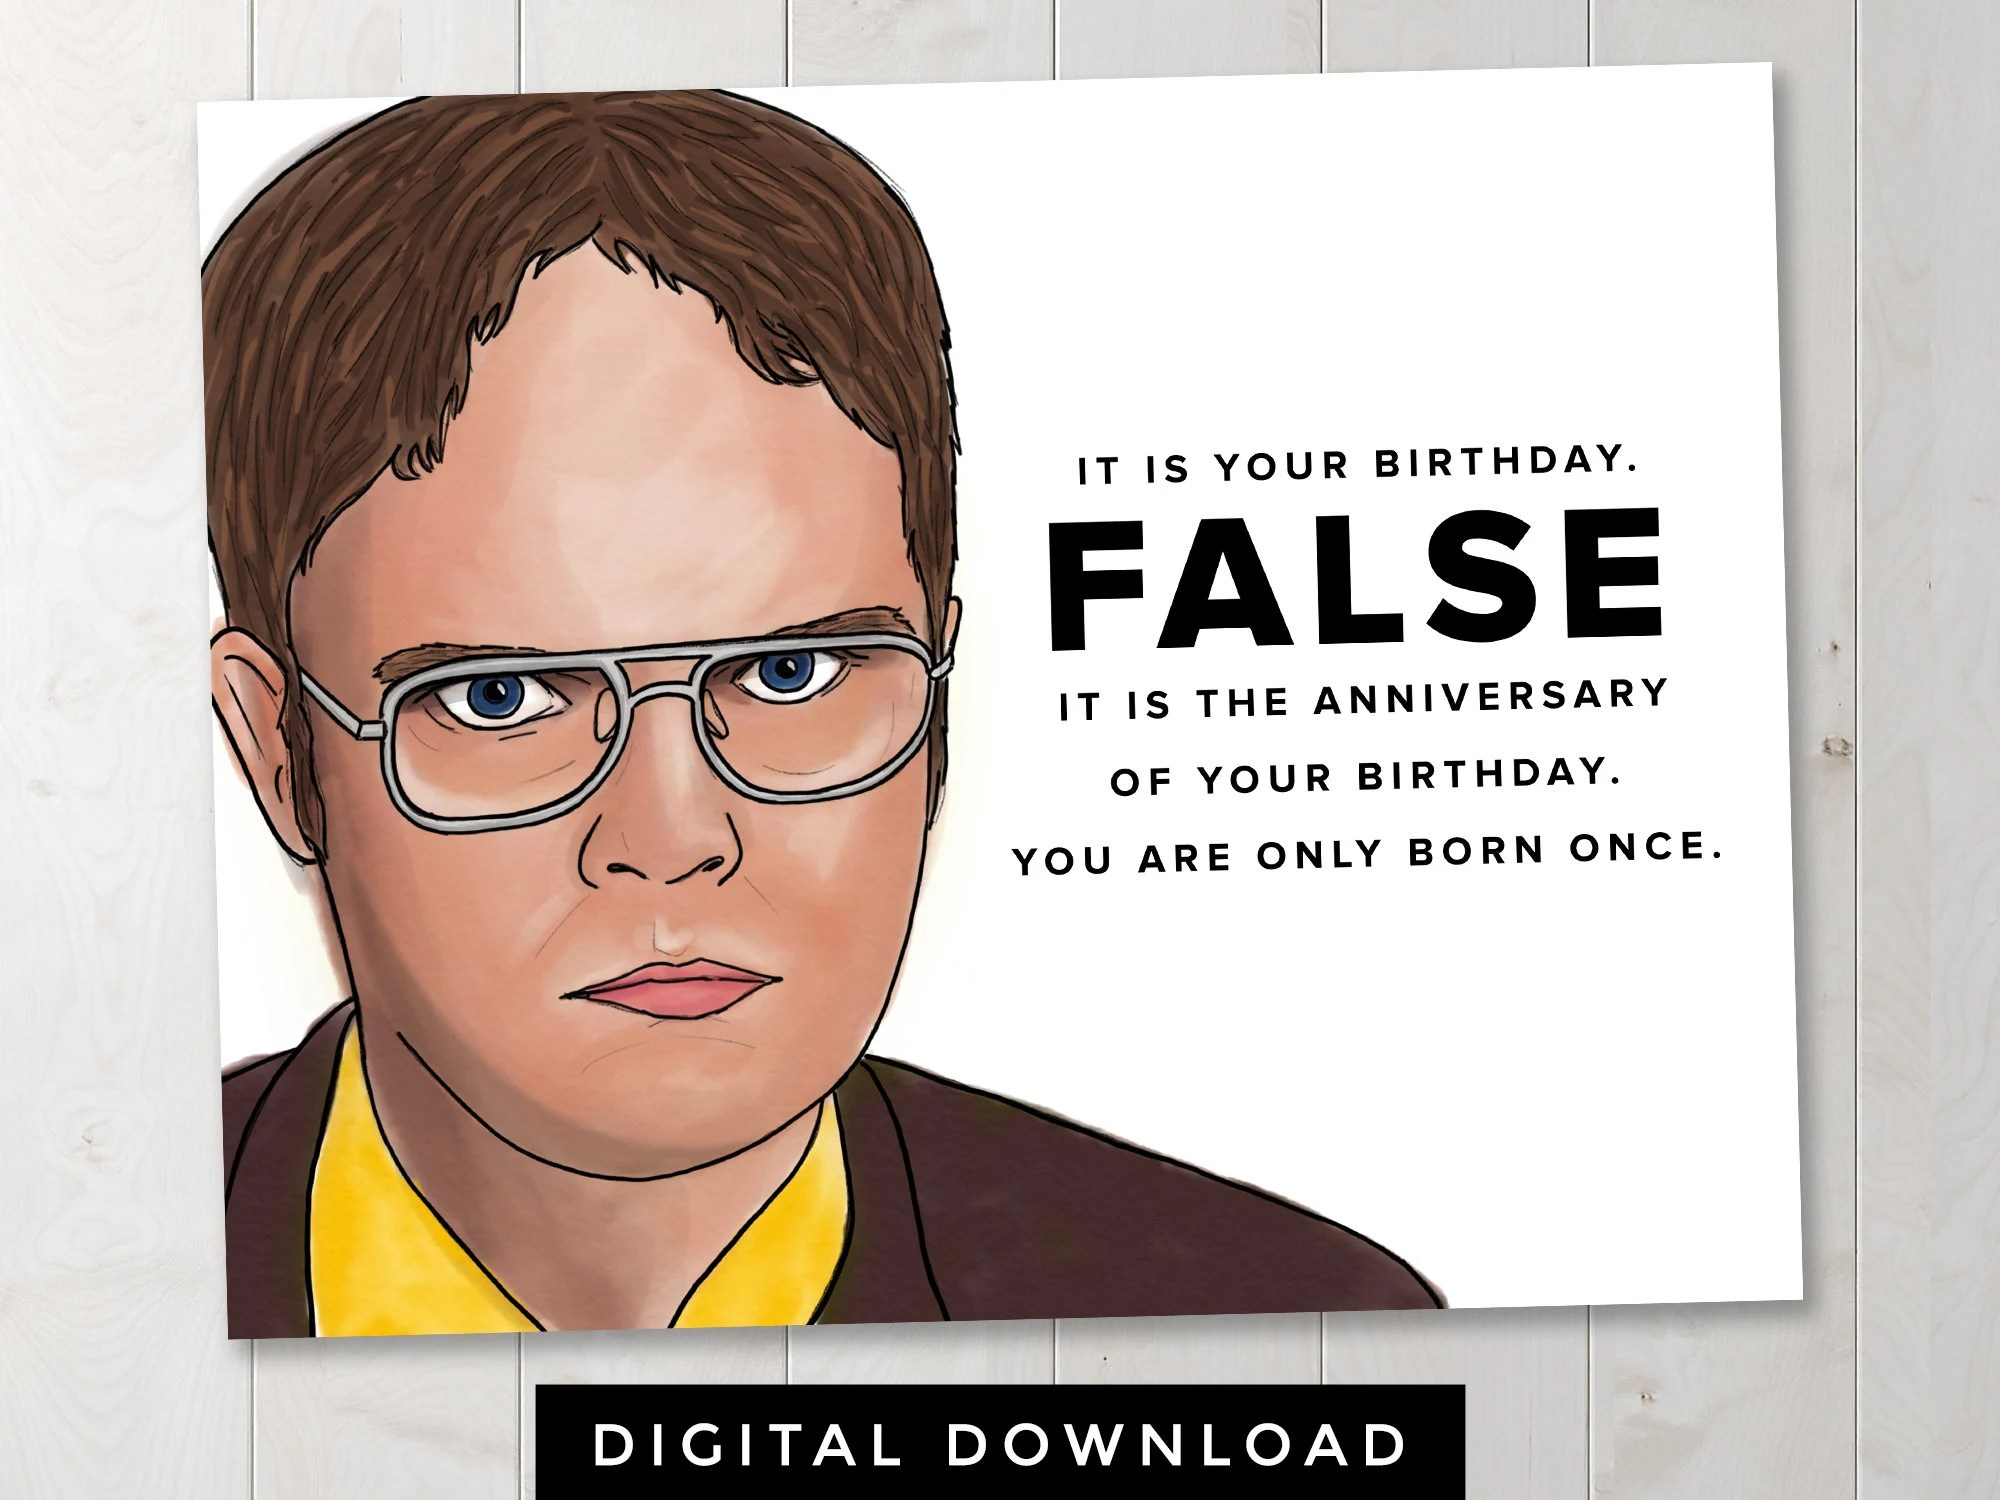 The Office Dwight Schrute False Birthday Digital Download Etsy